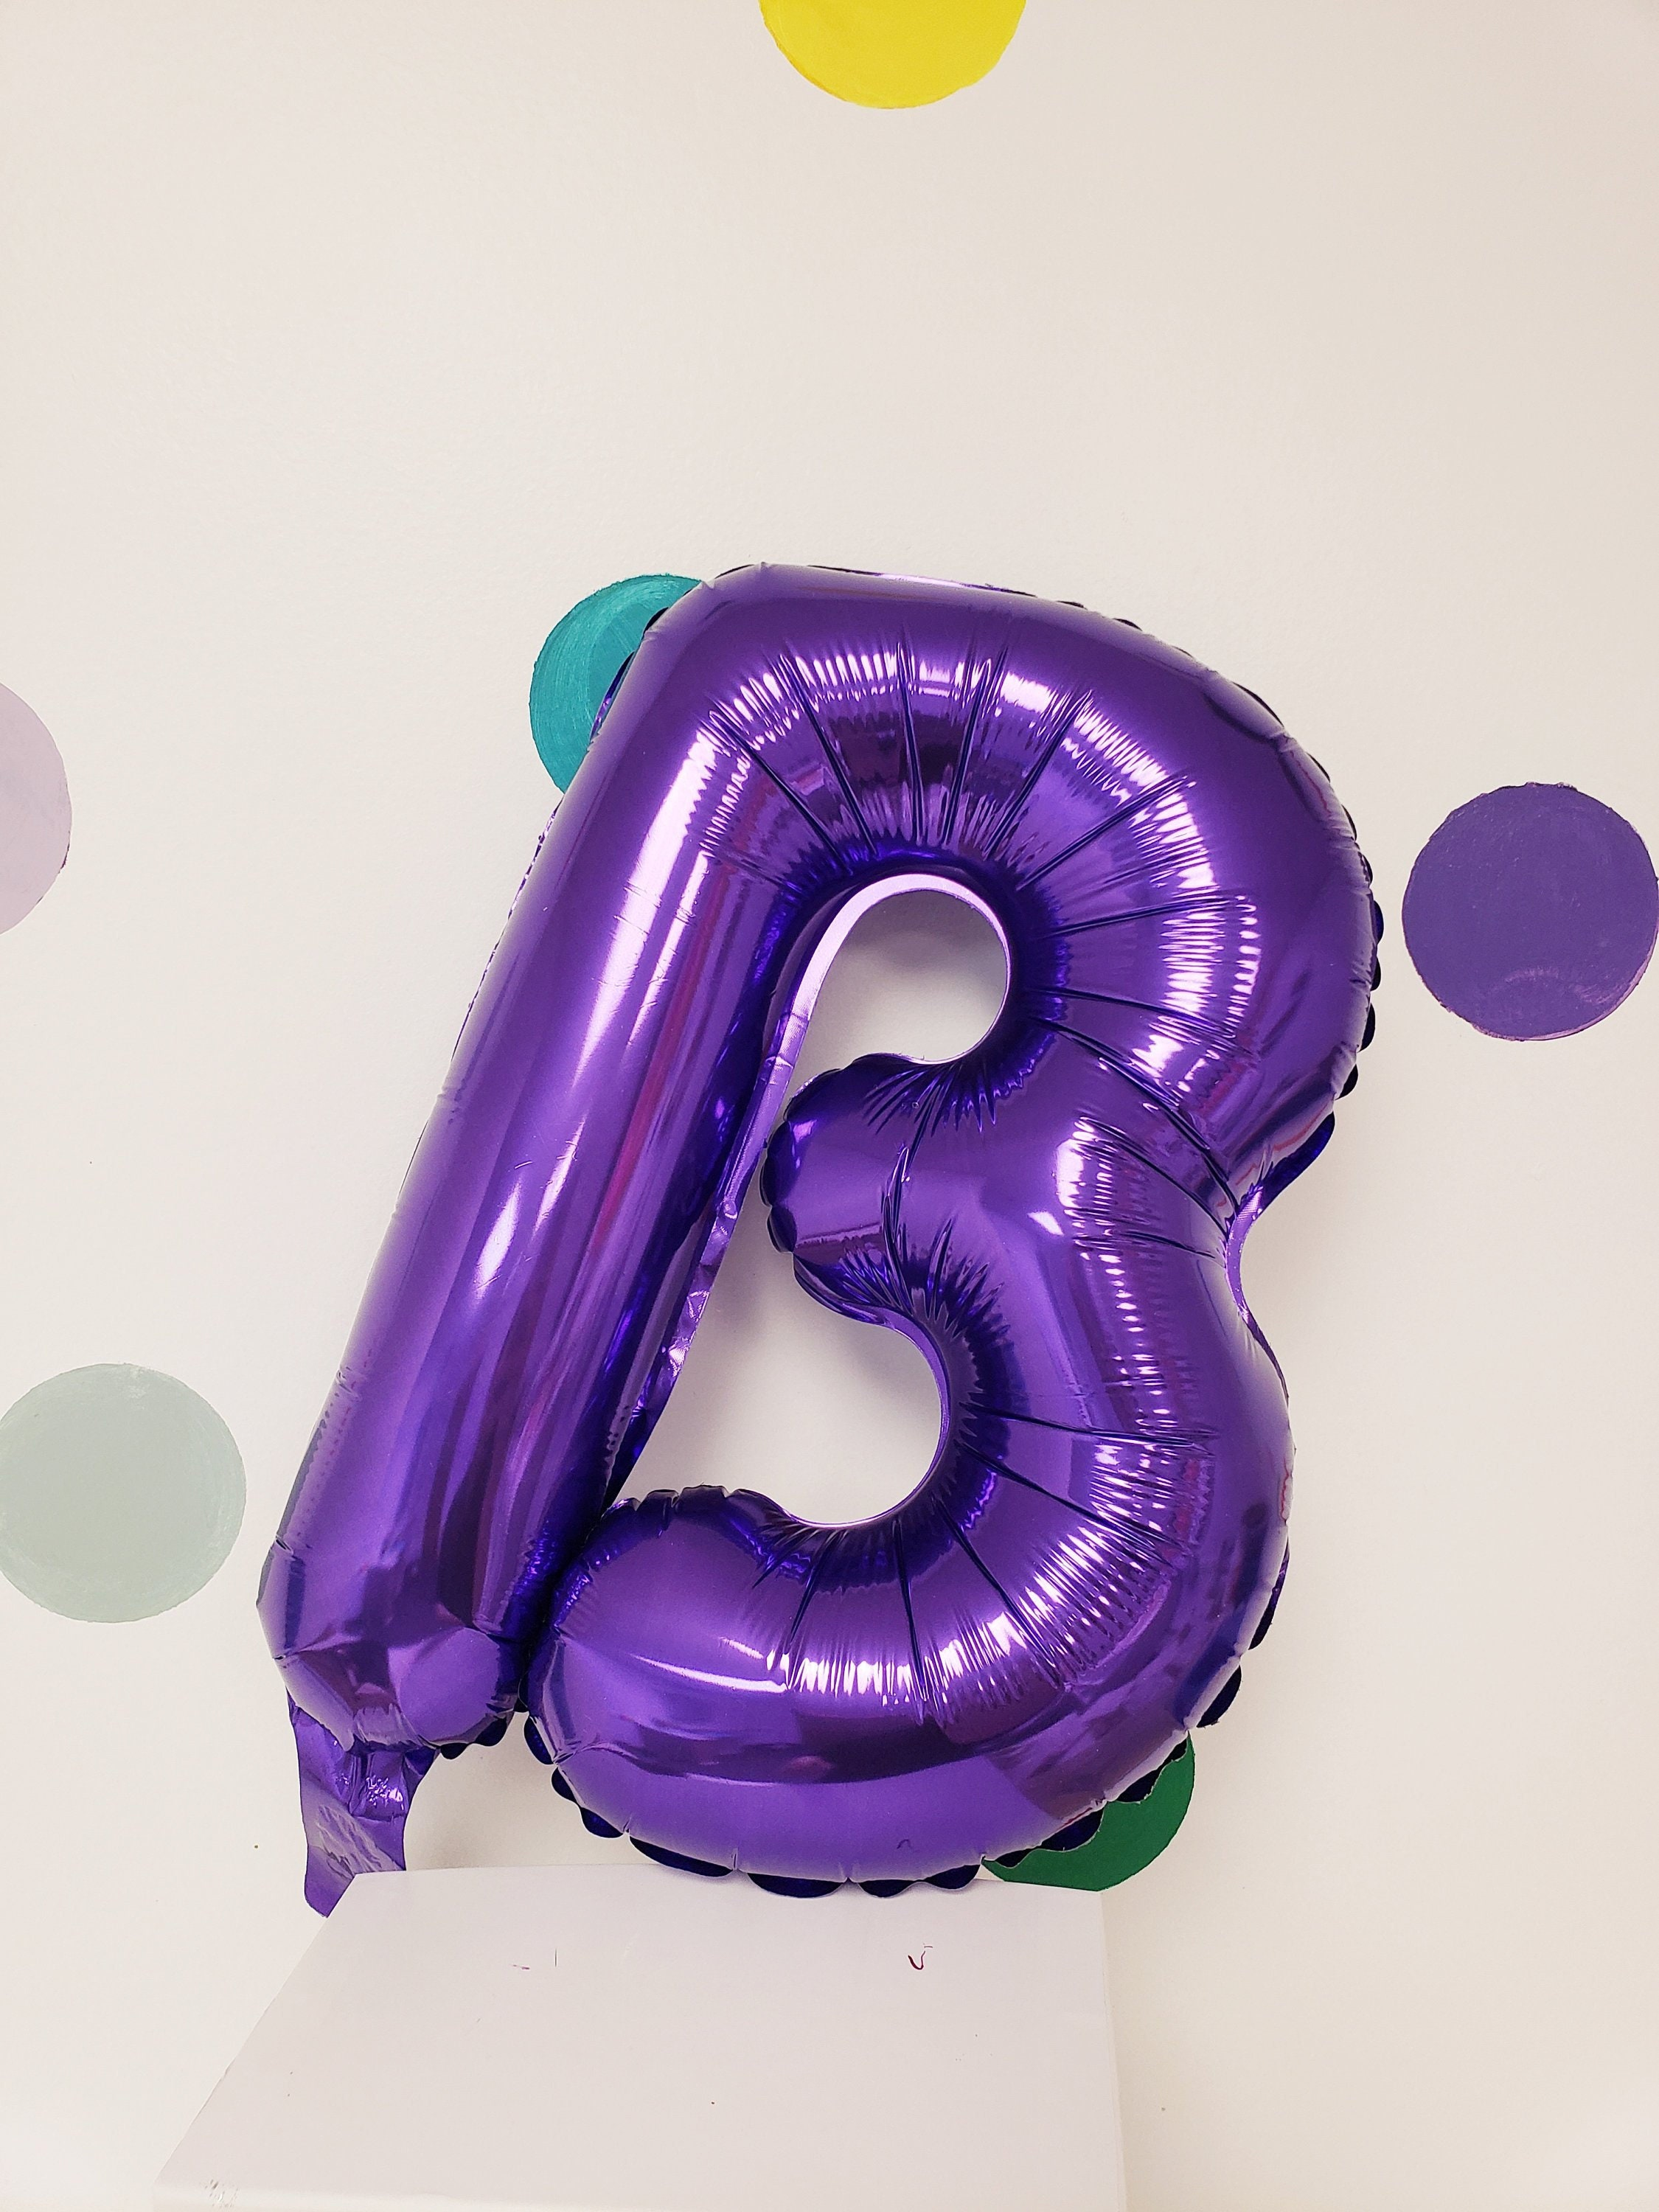 Sale 14 New PURPLE LETTER Balloons Balloon Custom Kit | Etsy